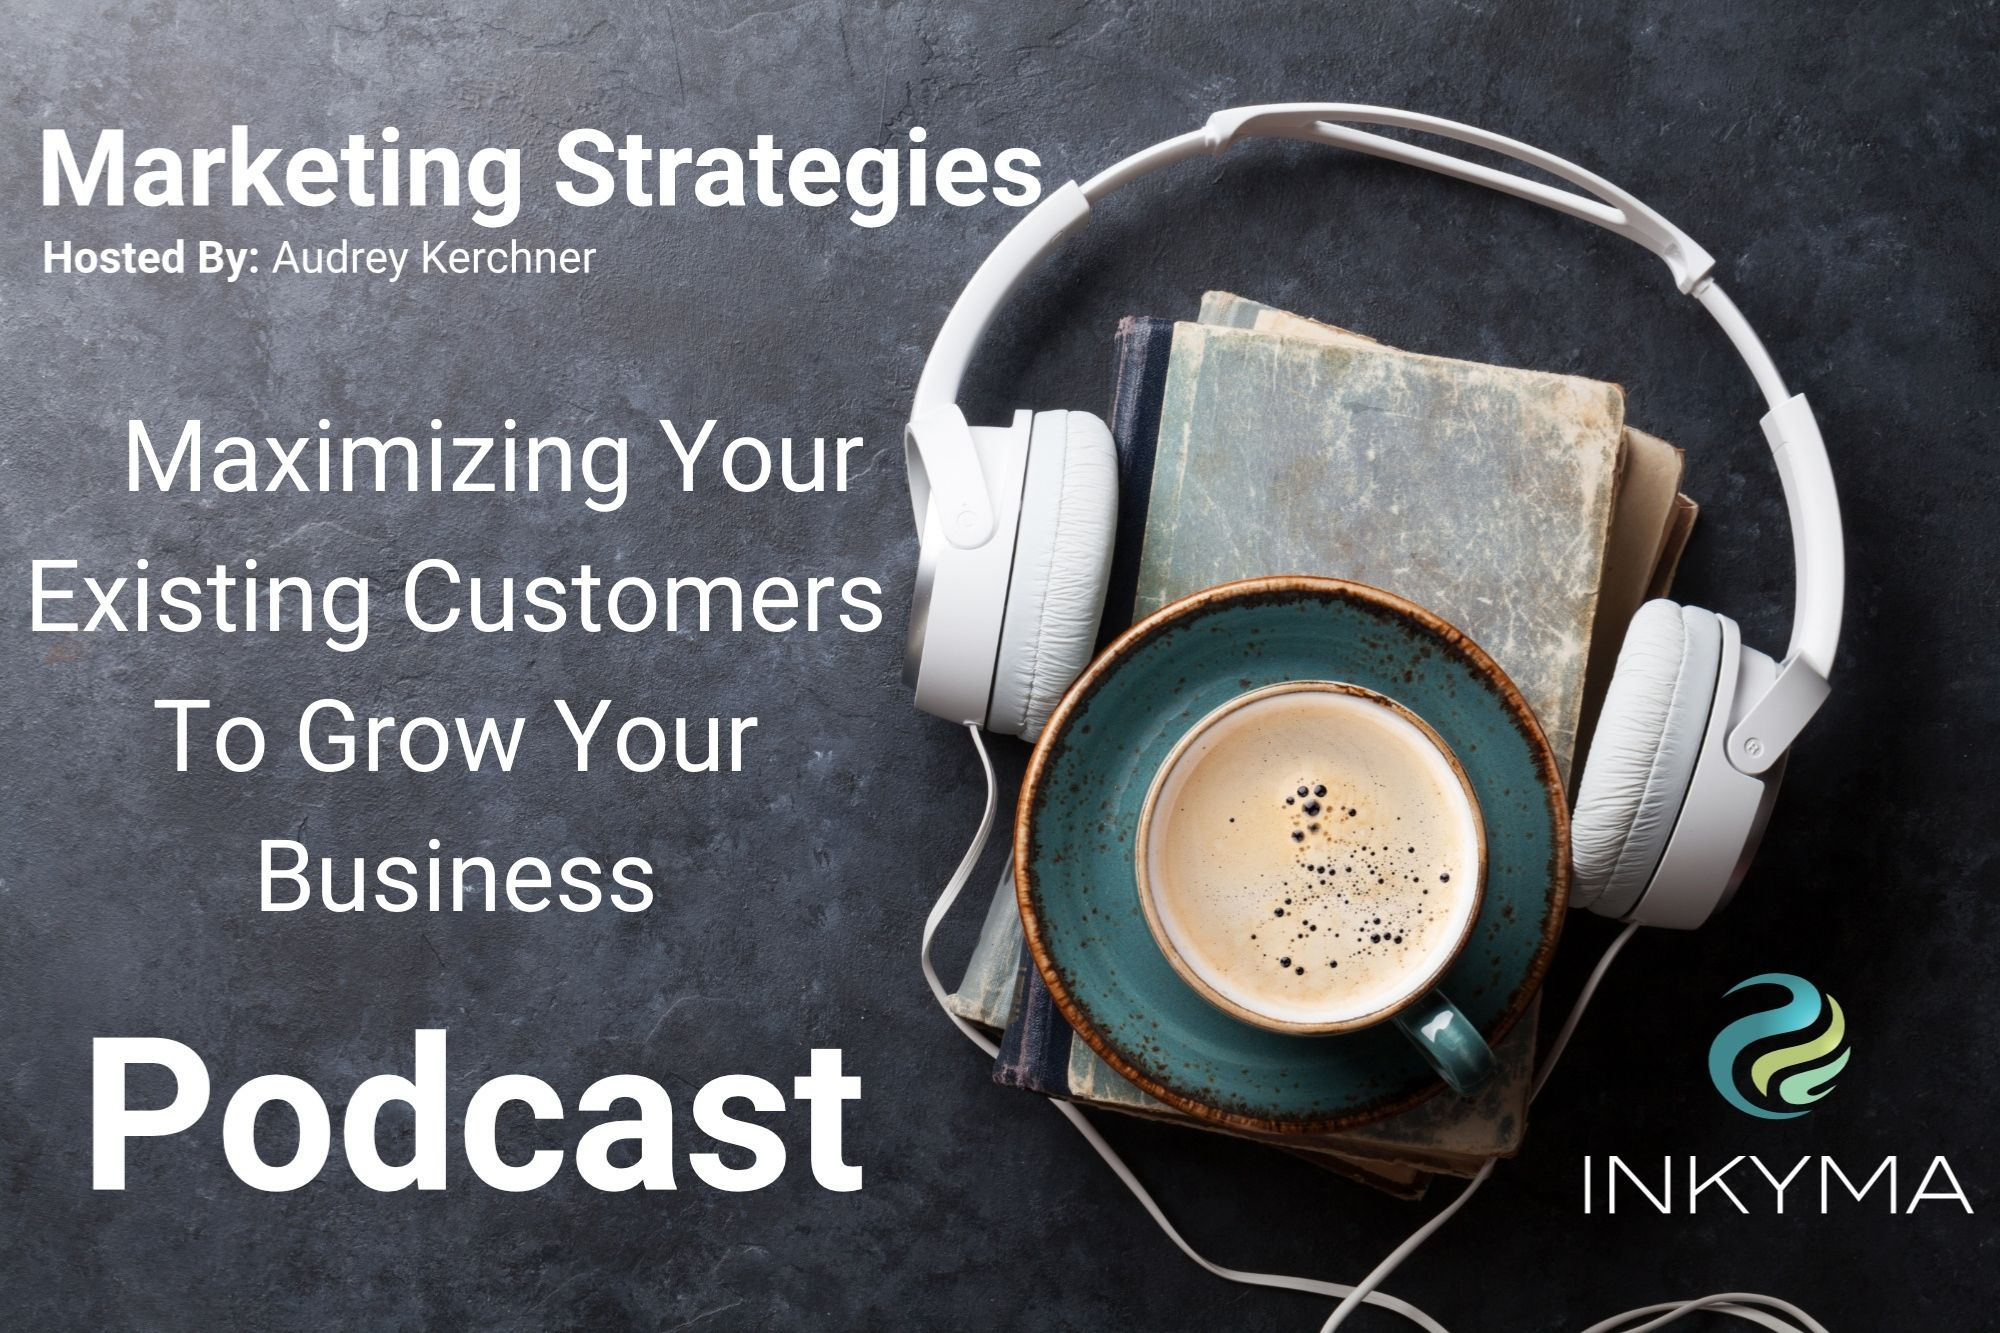 Maximizing Your Existing Customers To Grow Your Business